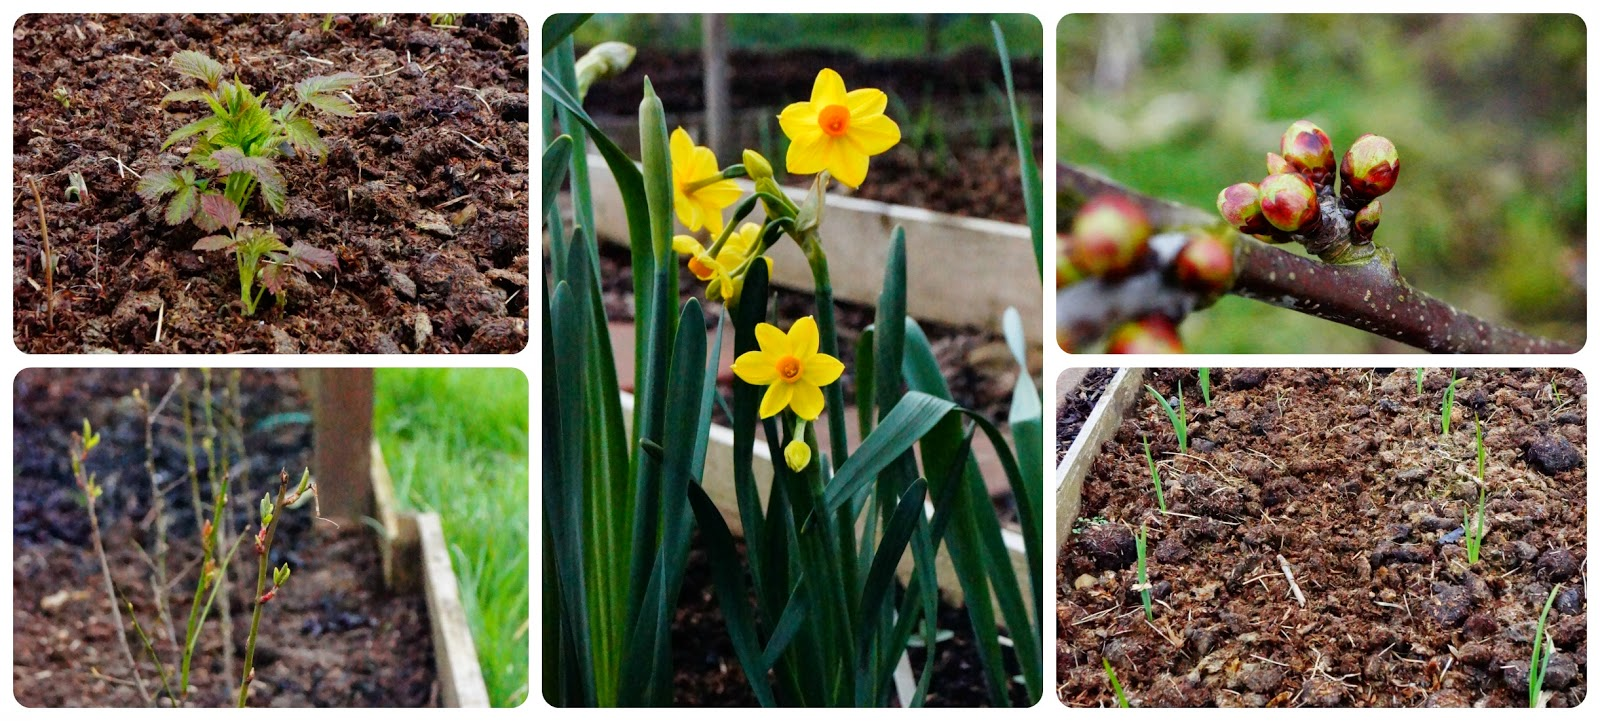 The joys of Spring awakenings - 'growourown.blogspot.com' ~ an allotment blog